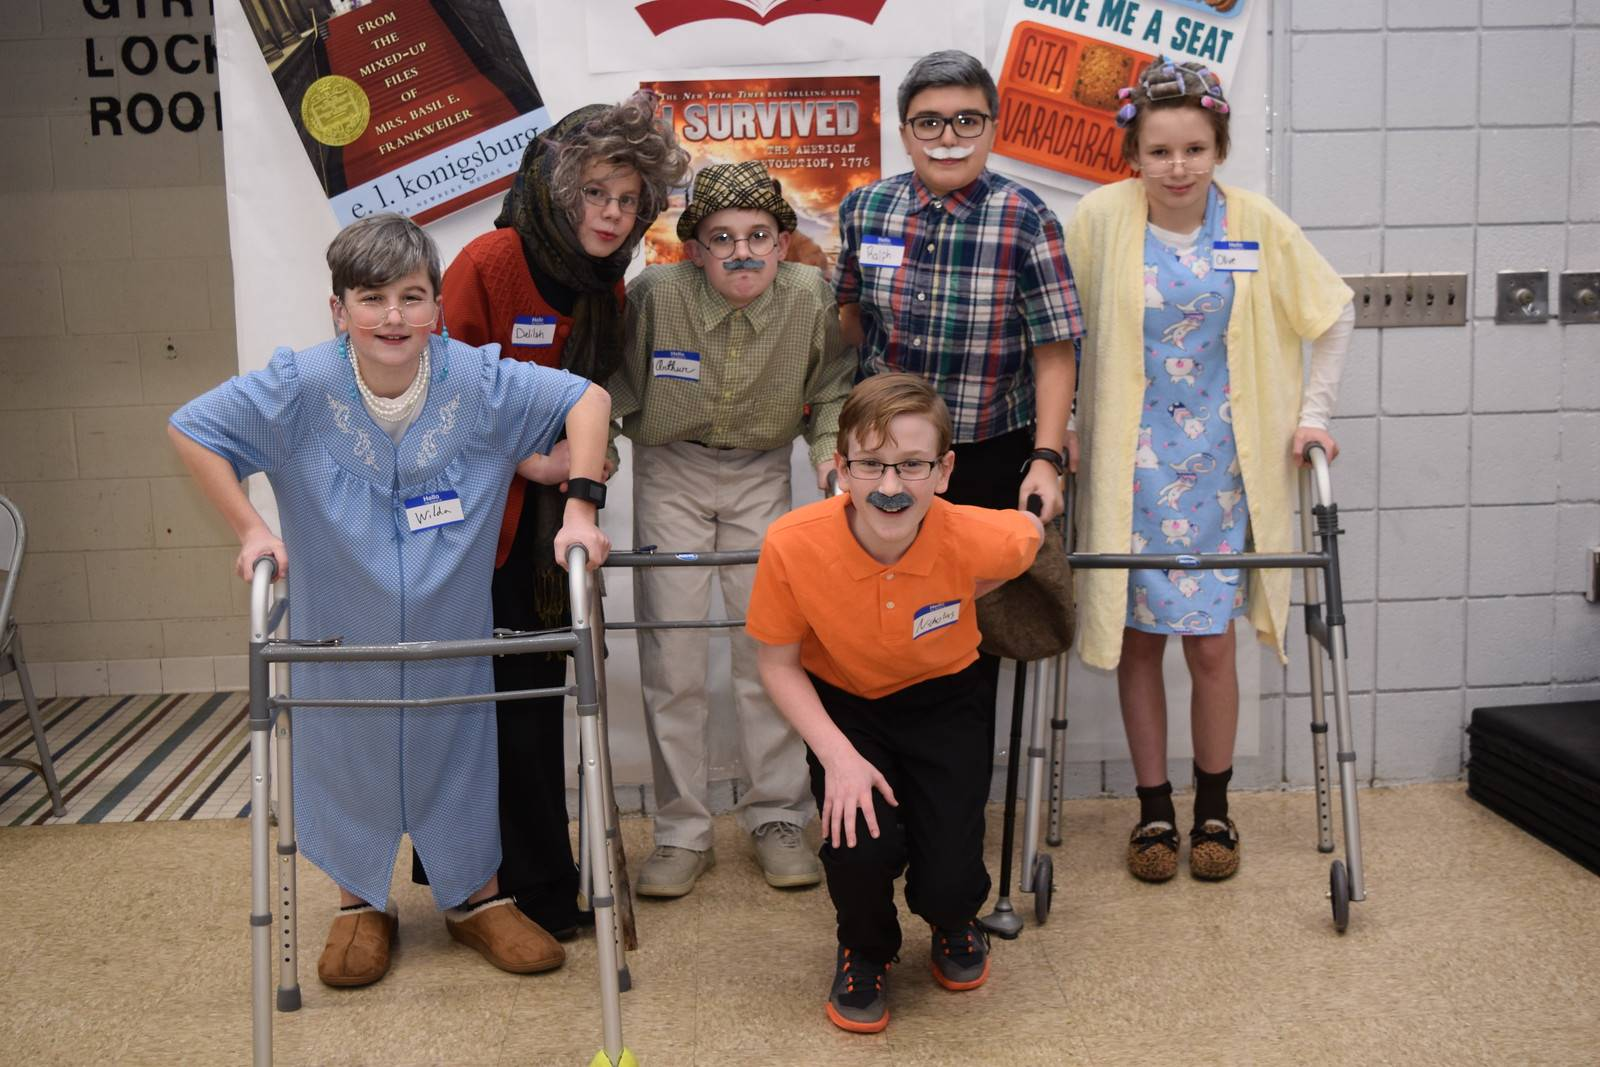 The Senior Citizen Book Club Battle of the Books Costume Contest Winning Team